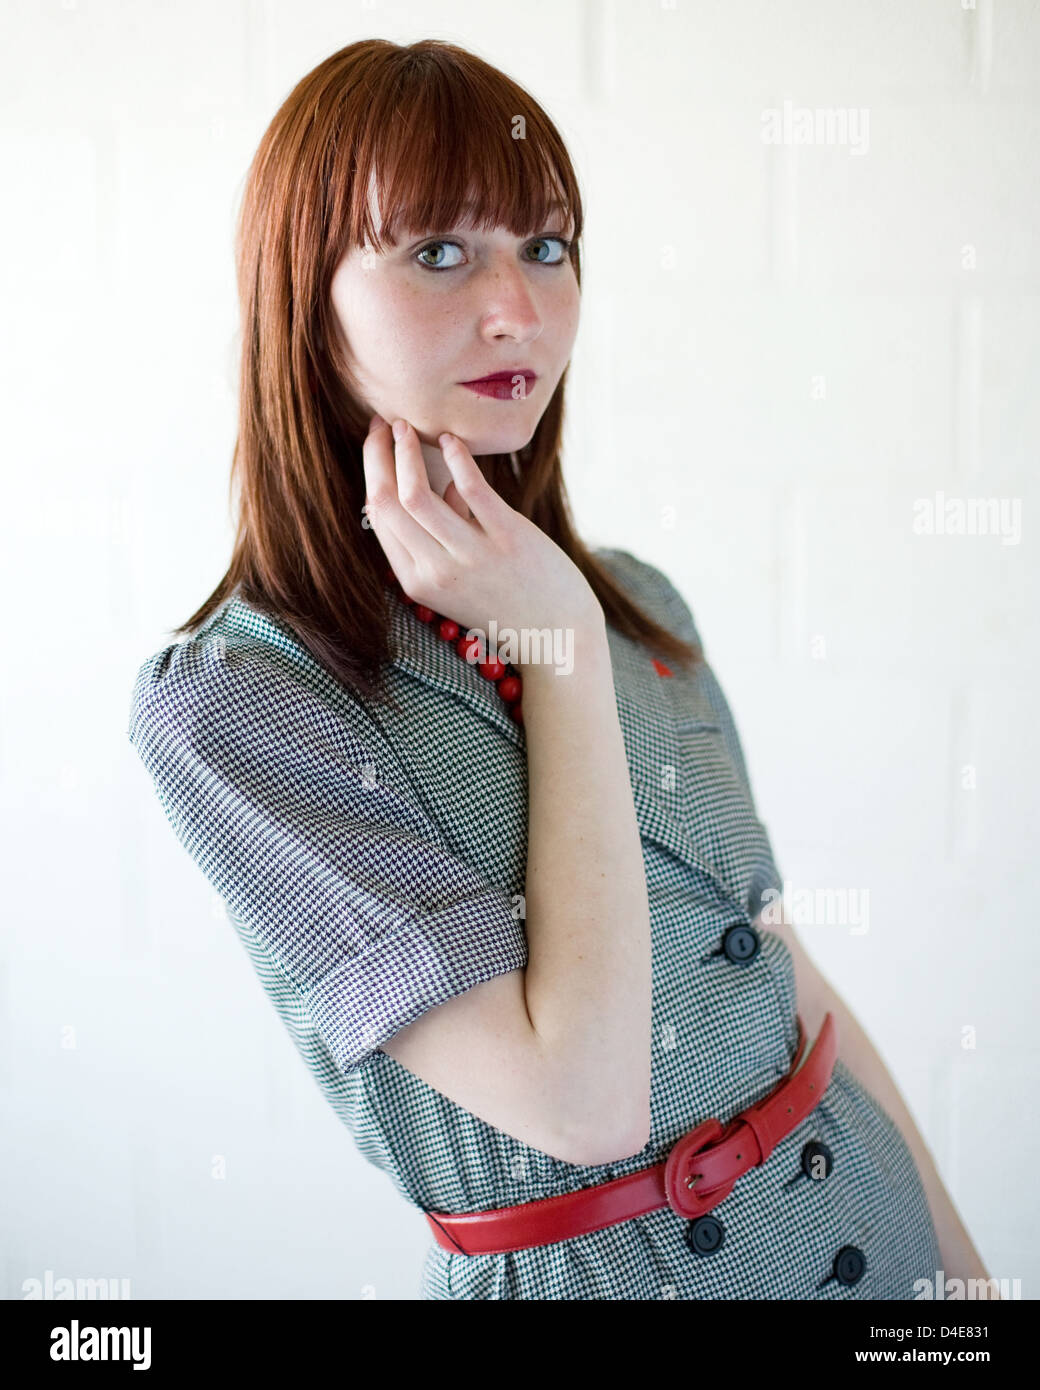 Young red haired woman wearing a retro styled suit - Stock Image